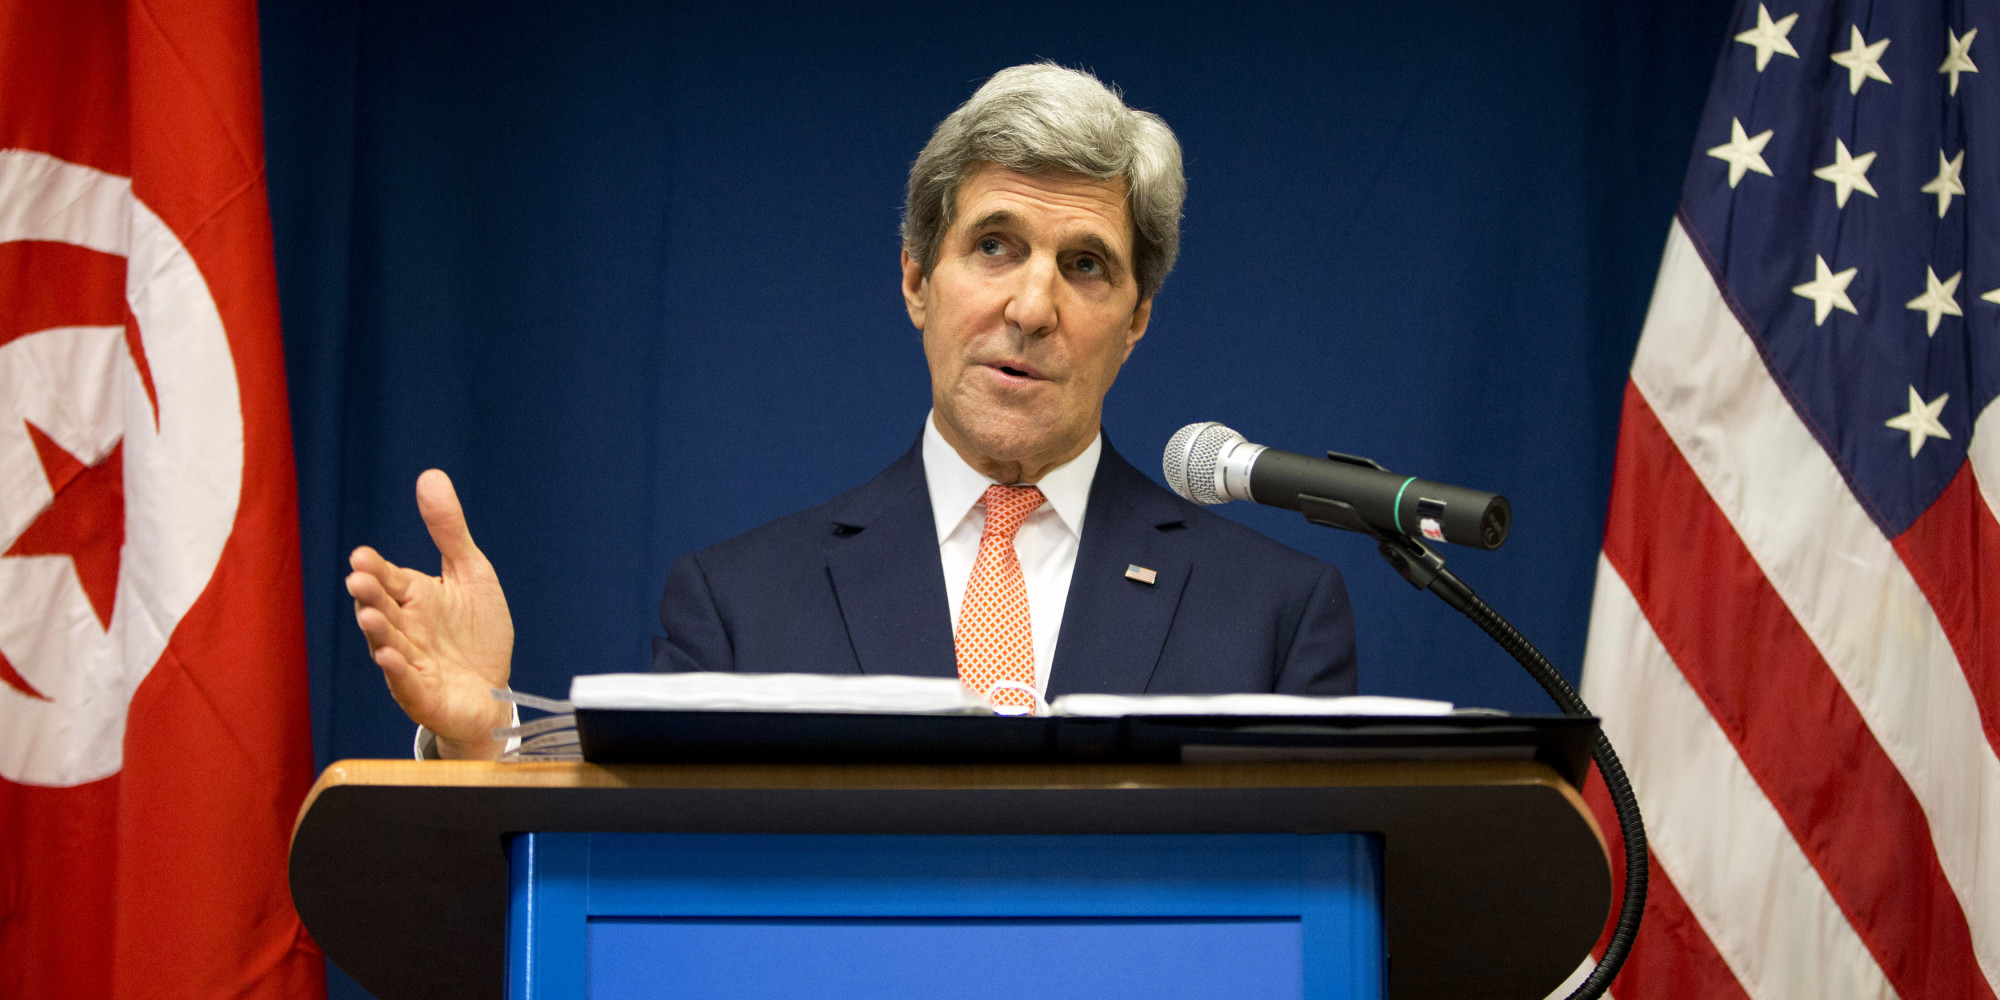 US Secretary of State John Kerry speaks during a news conference at the U.S. Embassy on Tuesday, Feb. 18, 2014, in Tunis.  Kerry promised continued American assistance in the North African nation's battle against terrorists, during his unannounced visit Tuesday. (AP Photo/Evan Vucci)